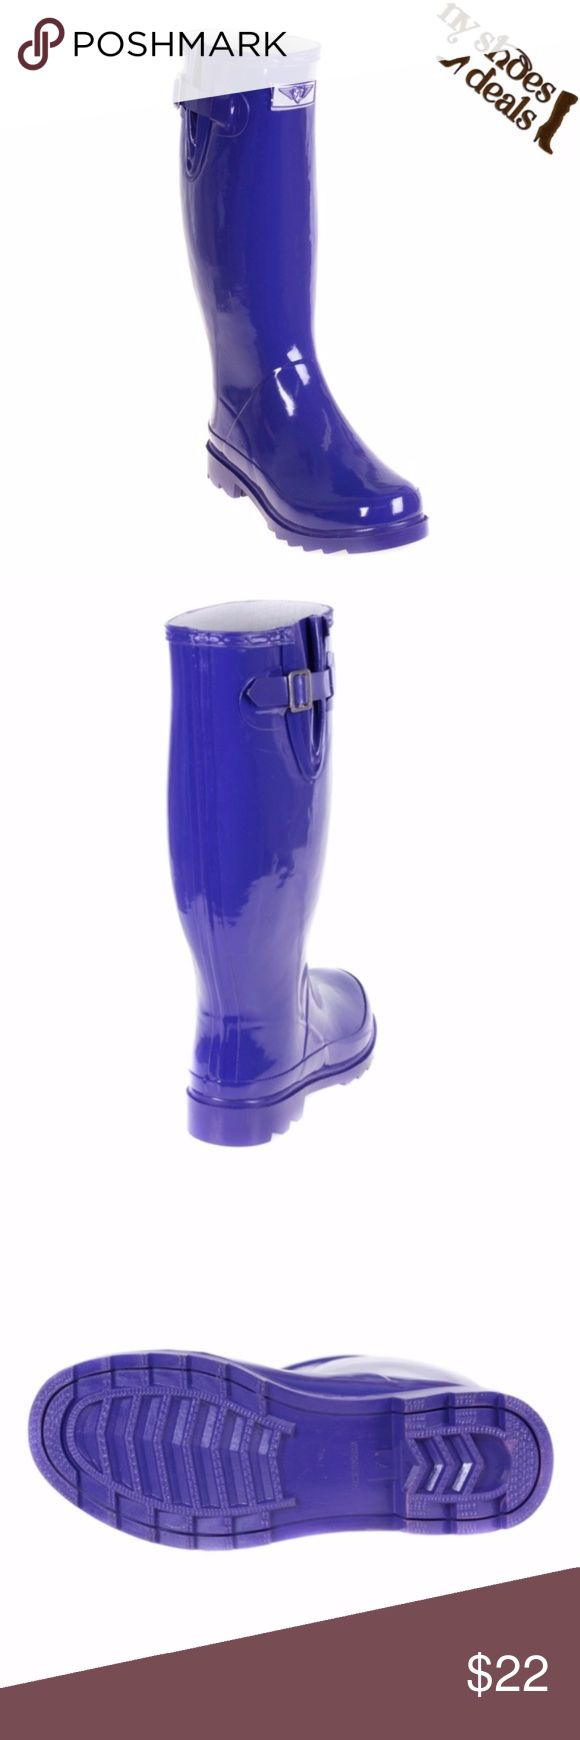 "Women's Purple Rubber Rain Boots 14"" RB-3106 Enjoy Rainy Weather in Stylish Ladies' Rain Boots! 100% Rubber, Full Cotton Lining. Whatever You Call Them - Wellies, Galoshes, Rain Boots or Sluggers, Your Feet Are Sure To Stay Dry While Exploring Puddles or Gardening! Run Half a Size Large to Accommodate a Thick Sock. Not Made For Wide Calves.   Height 11"", calf circumf. approx. 15"". Forever Young Shoes Winter & Rain Boots"